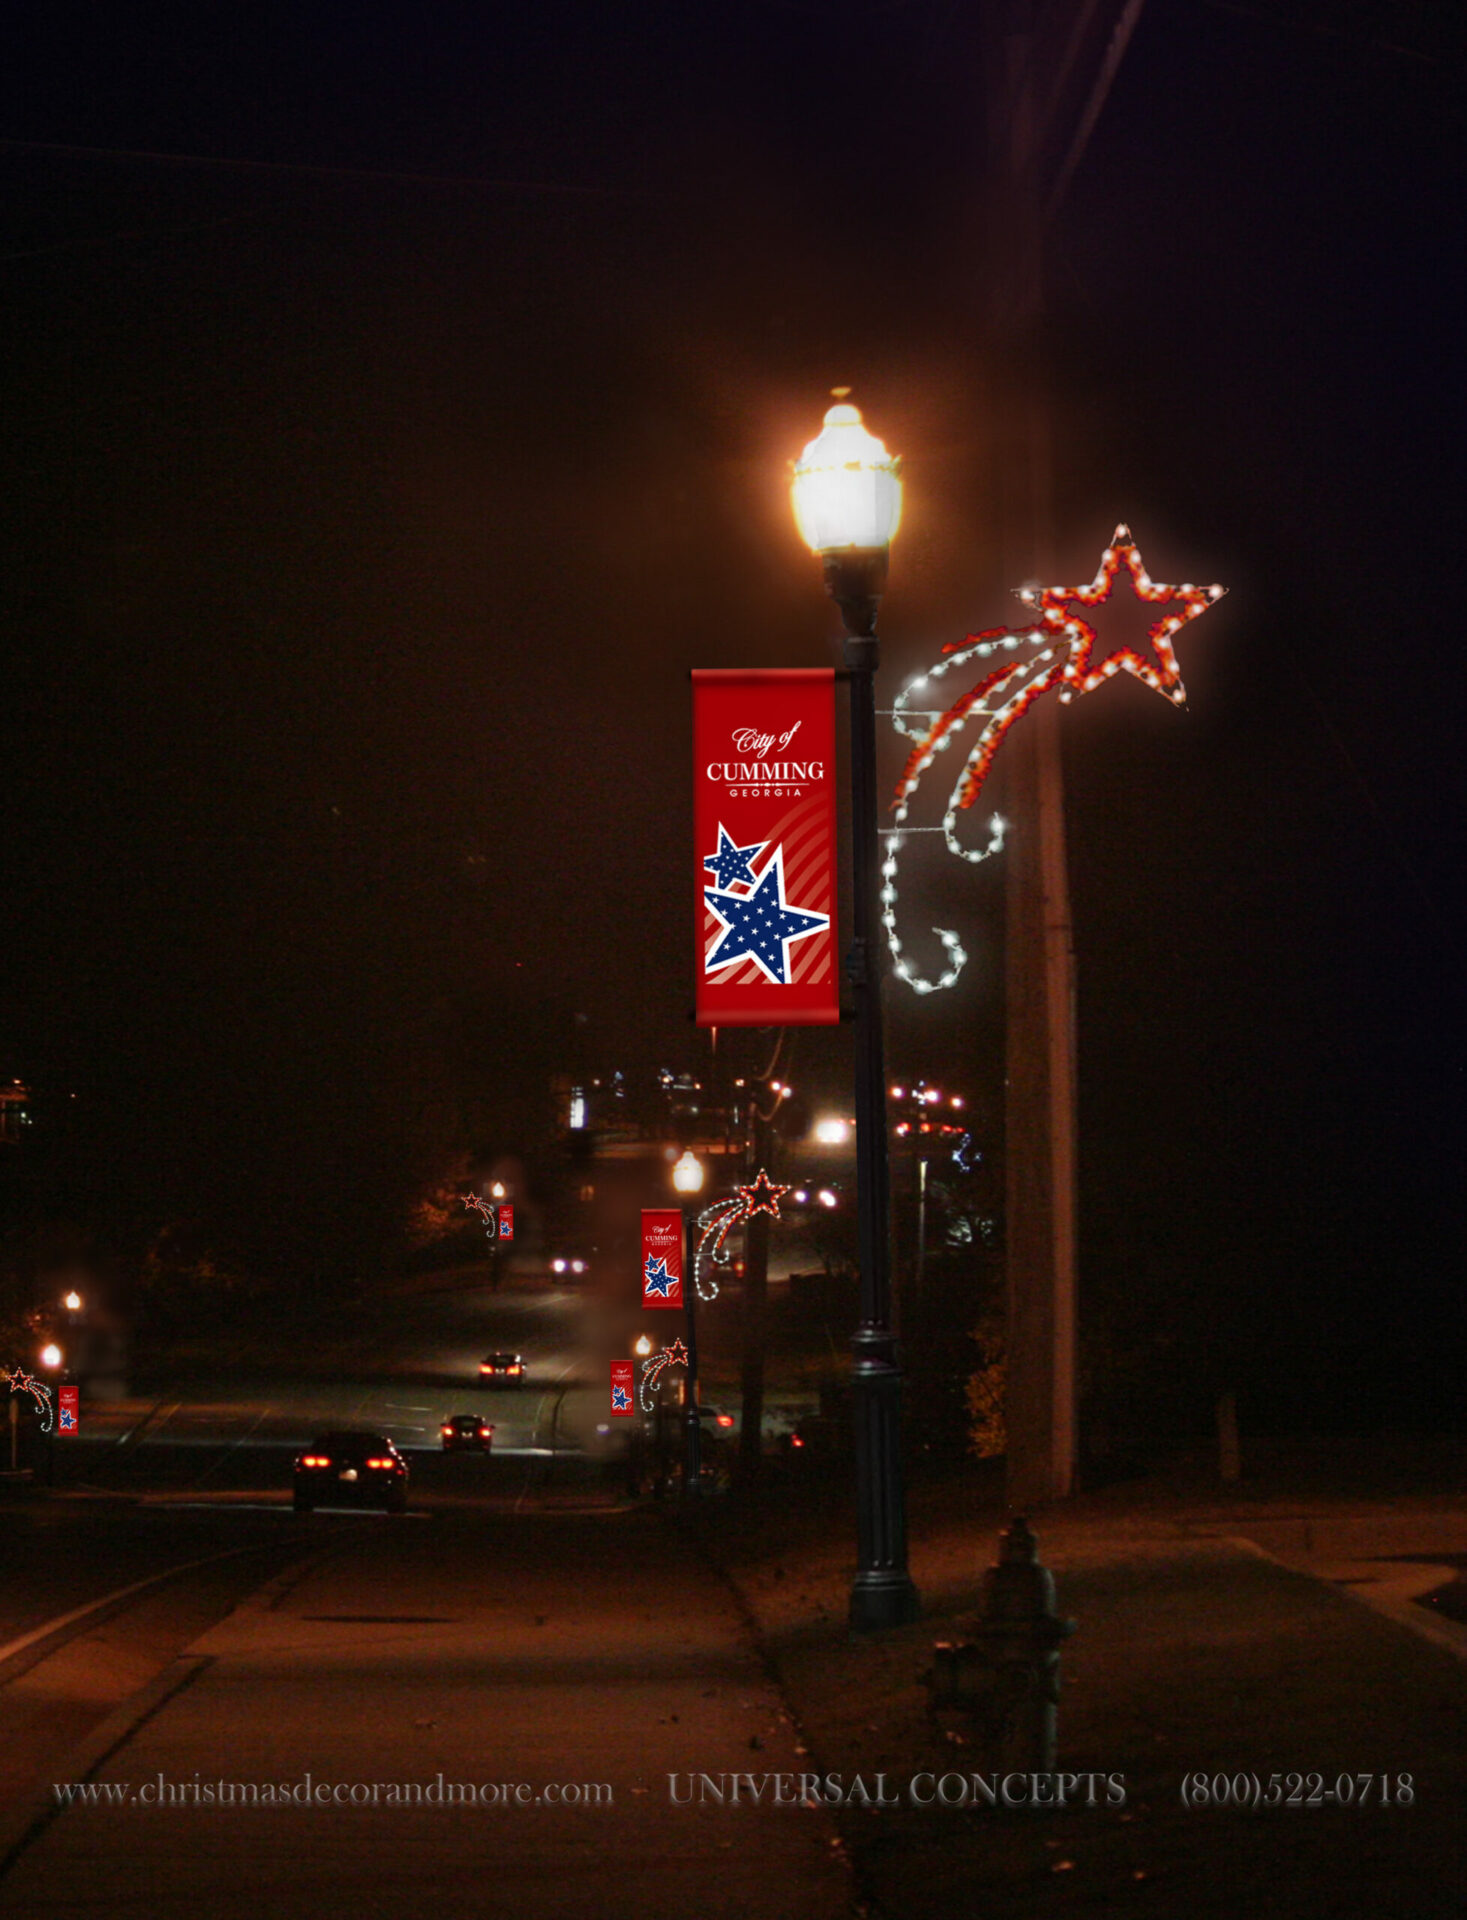 Our Shooting Star Pole Decor with Banner - Universal Concepts